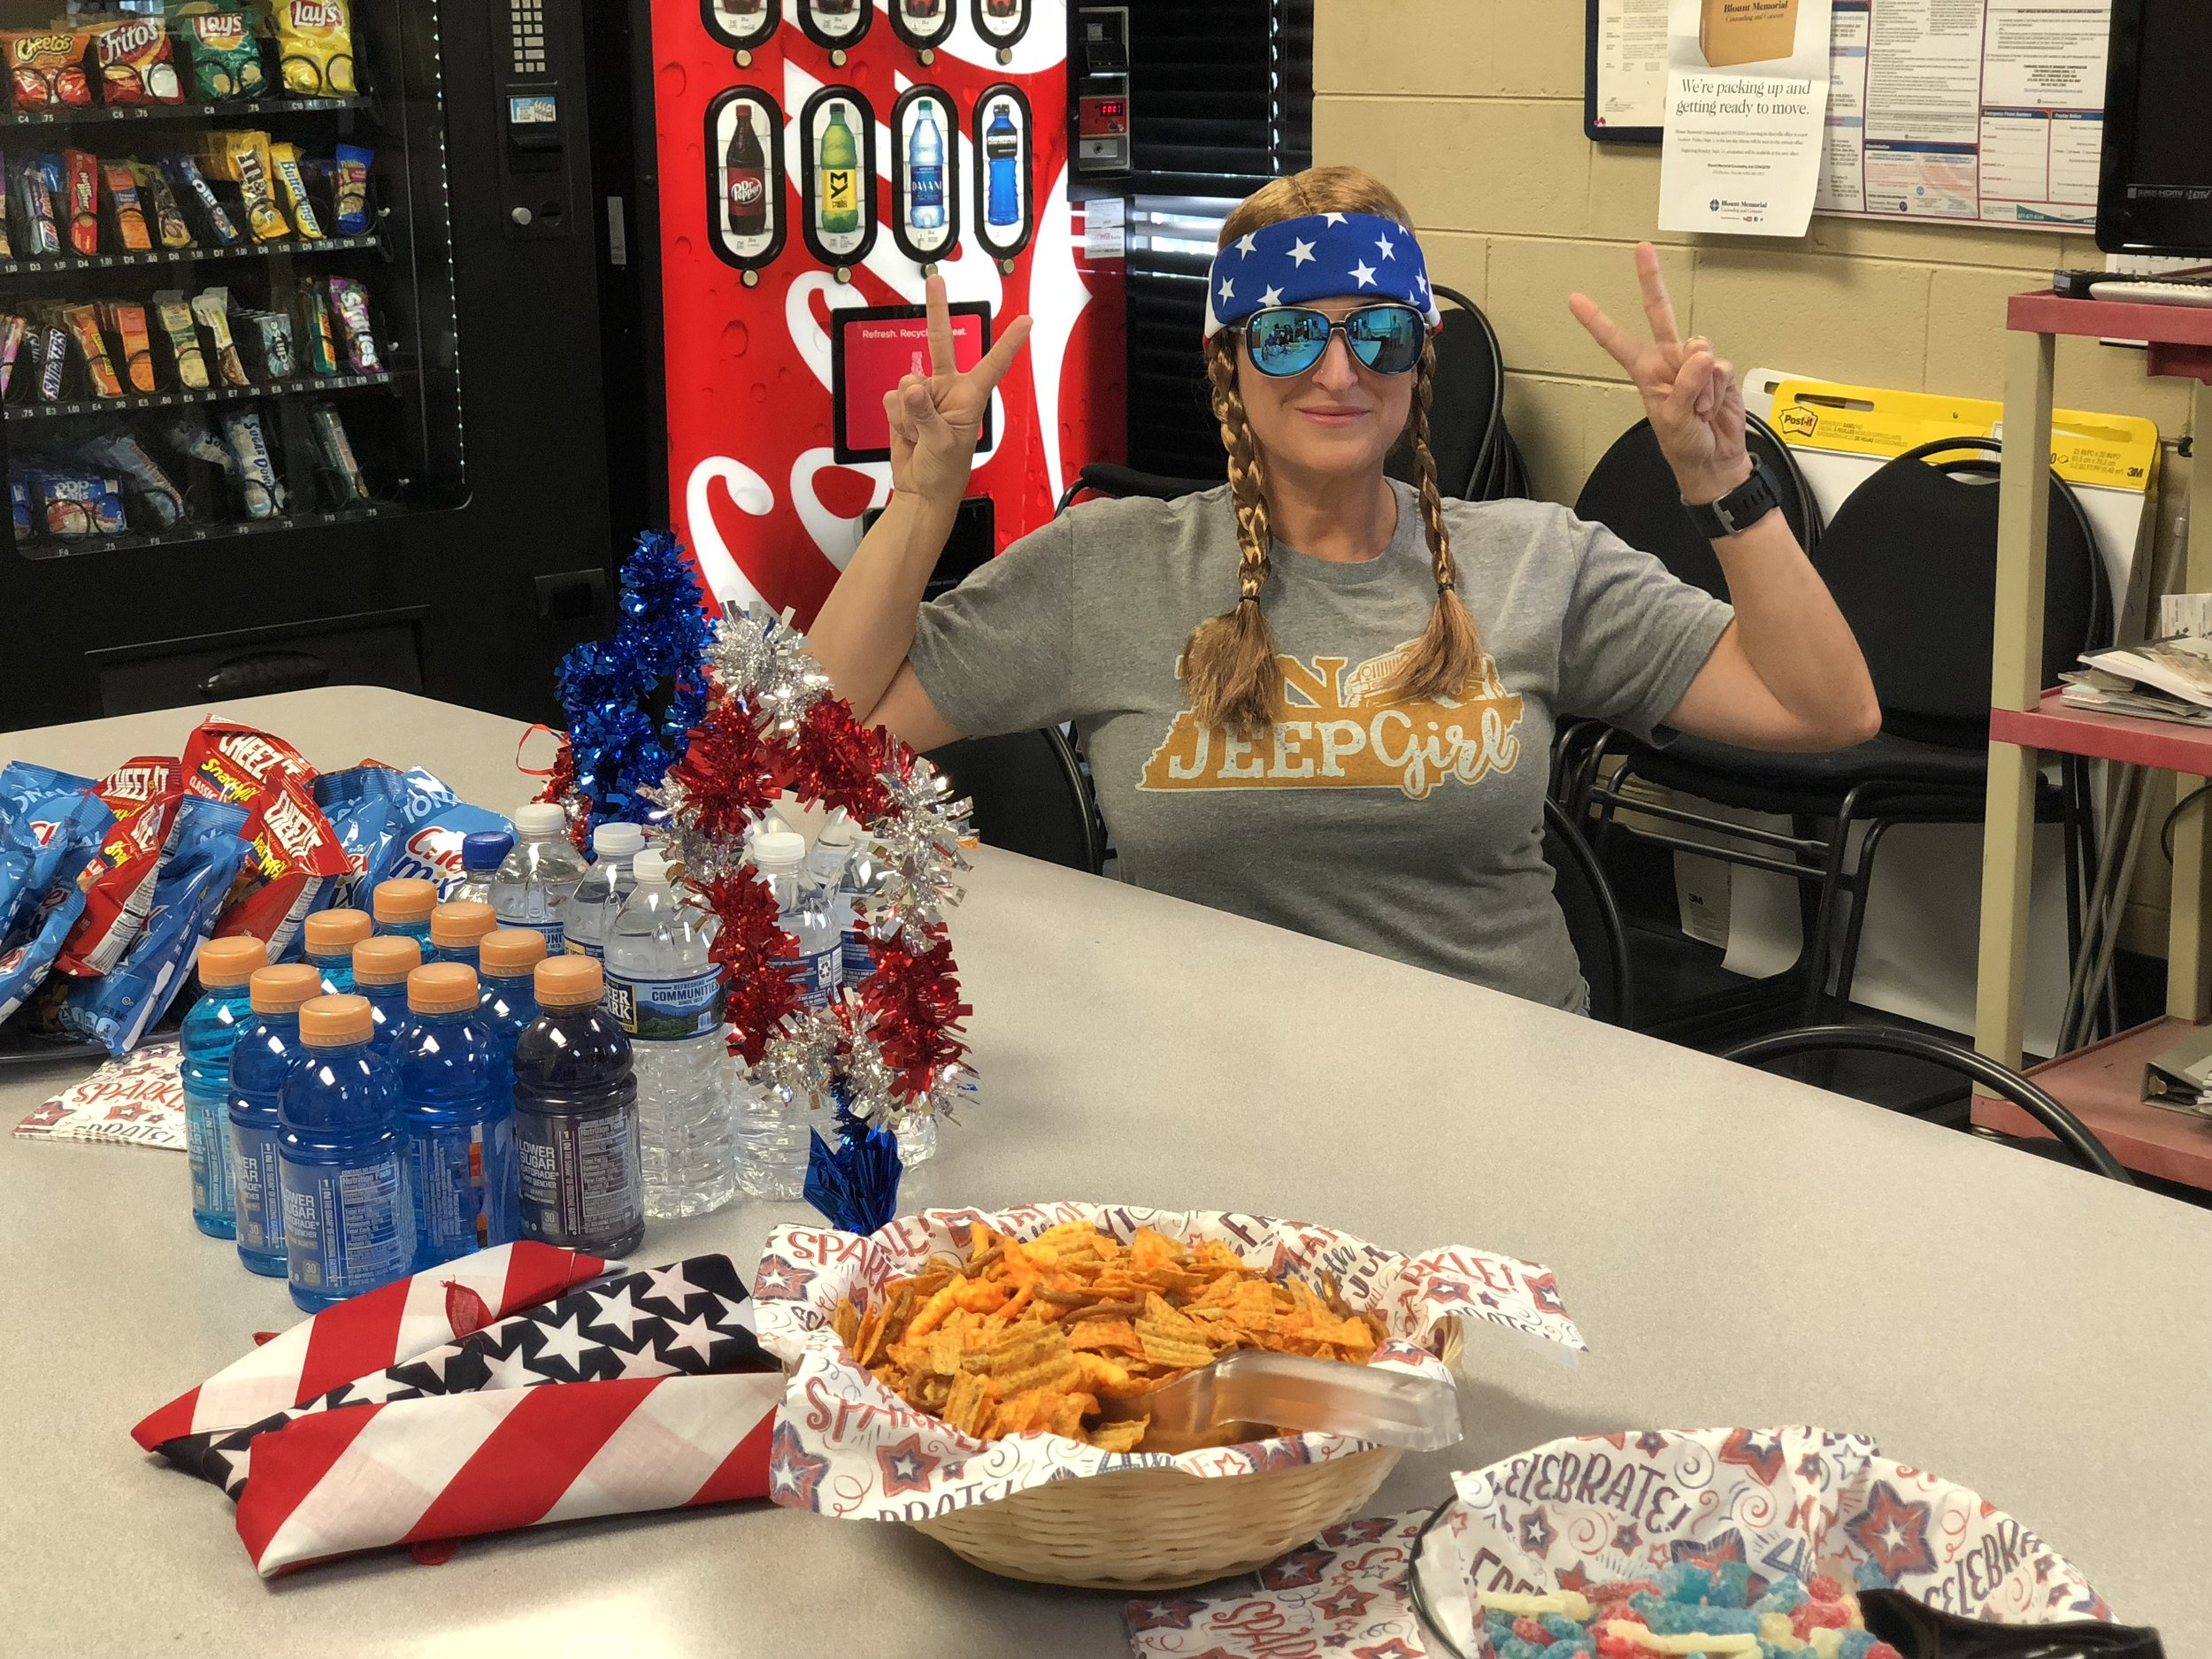 35 Random Acts of Kindness - Surprise 4th of July Party